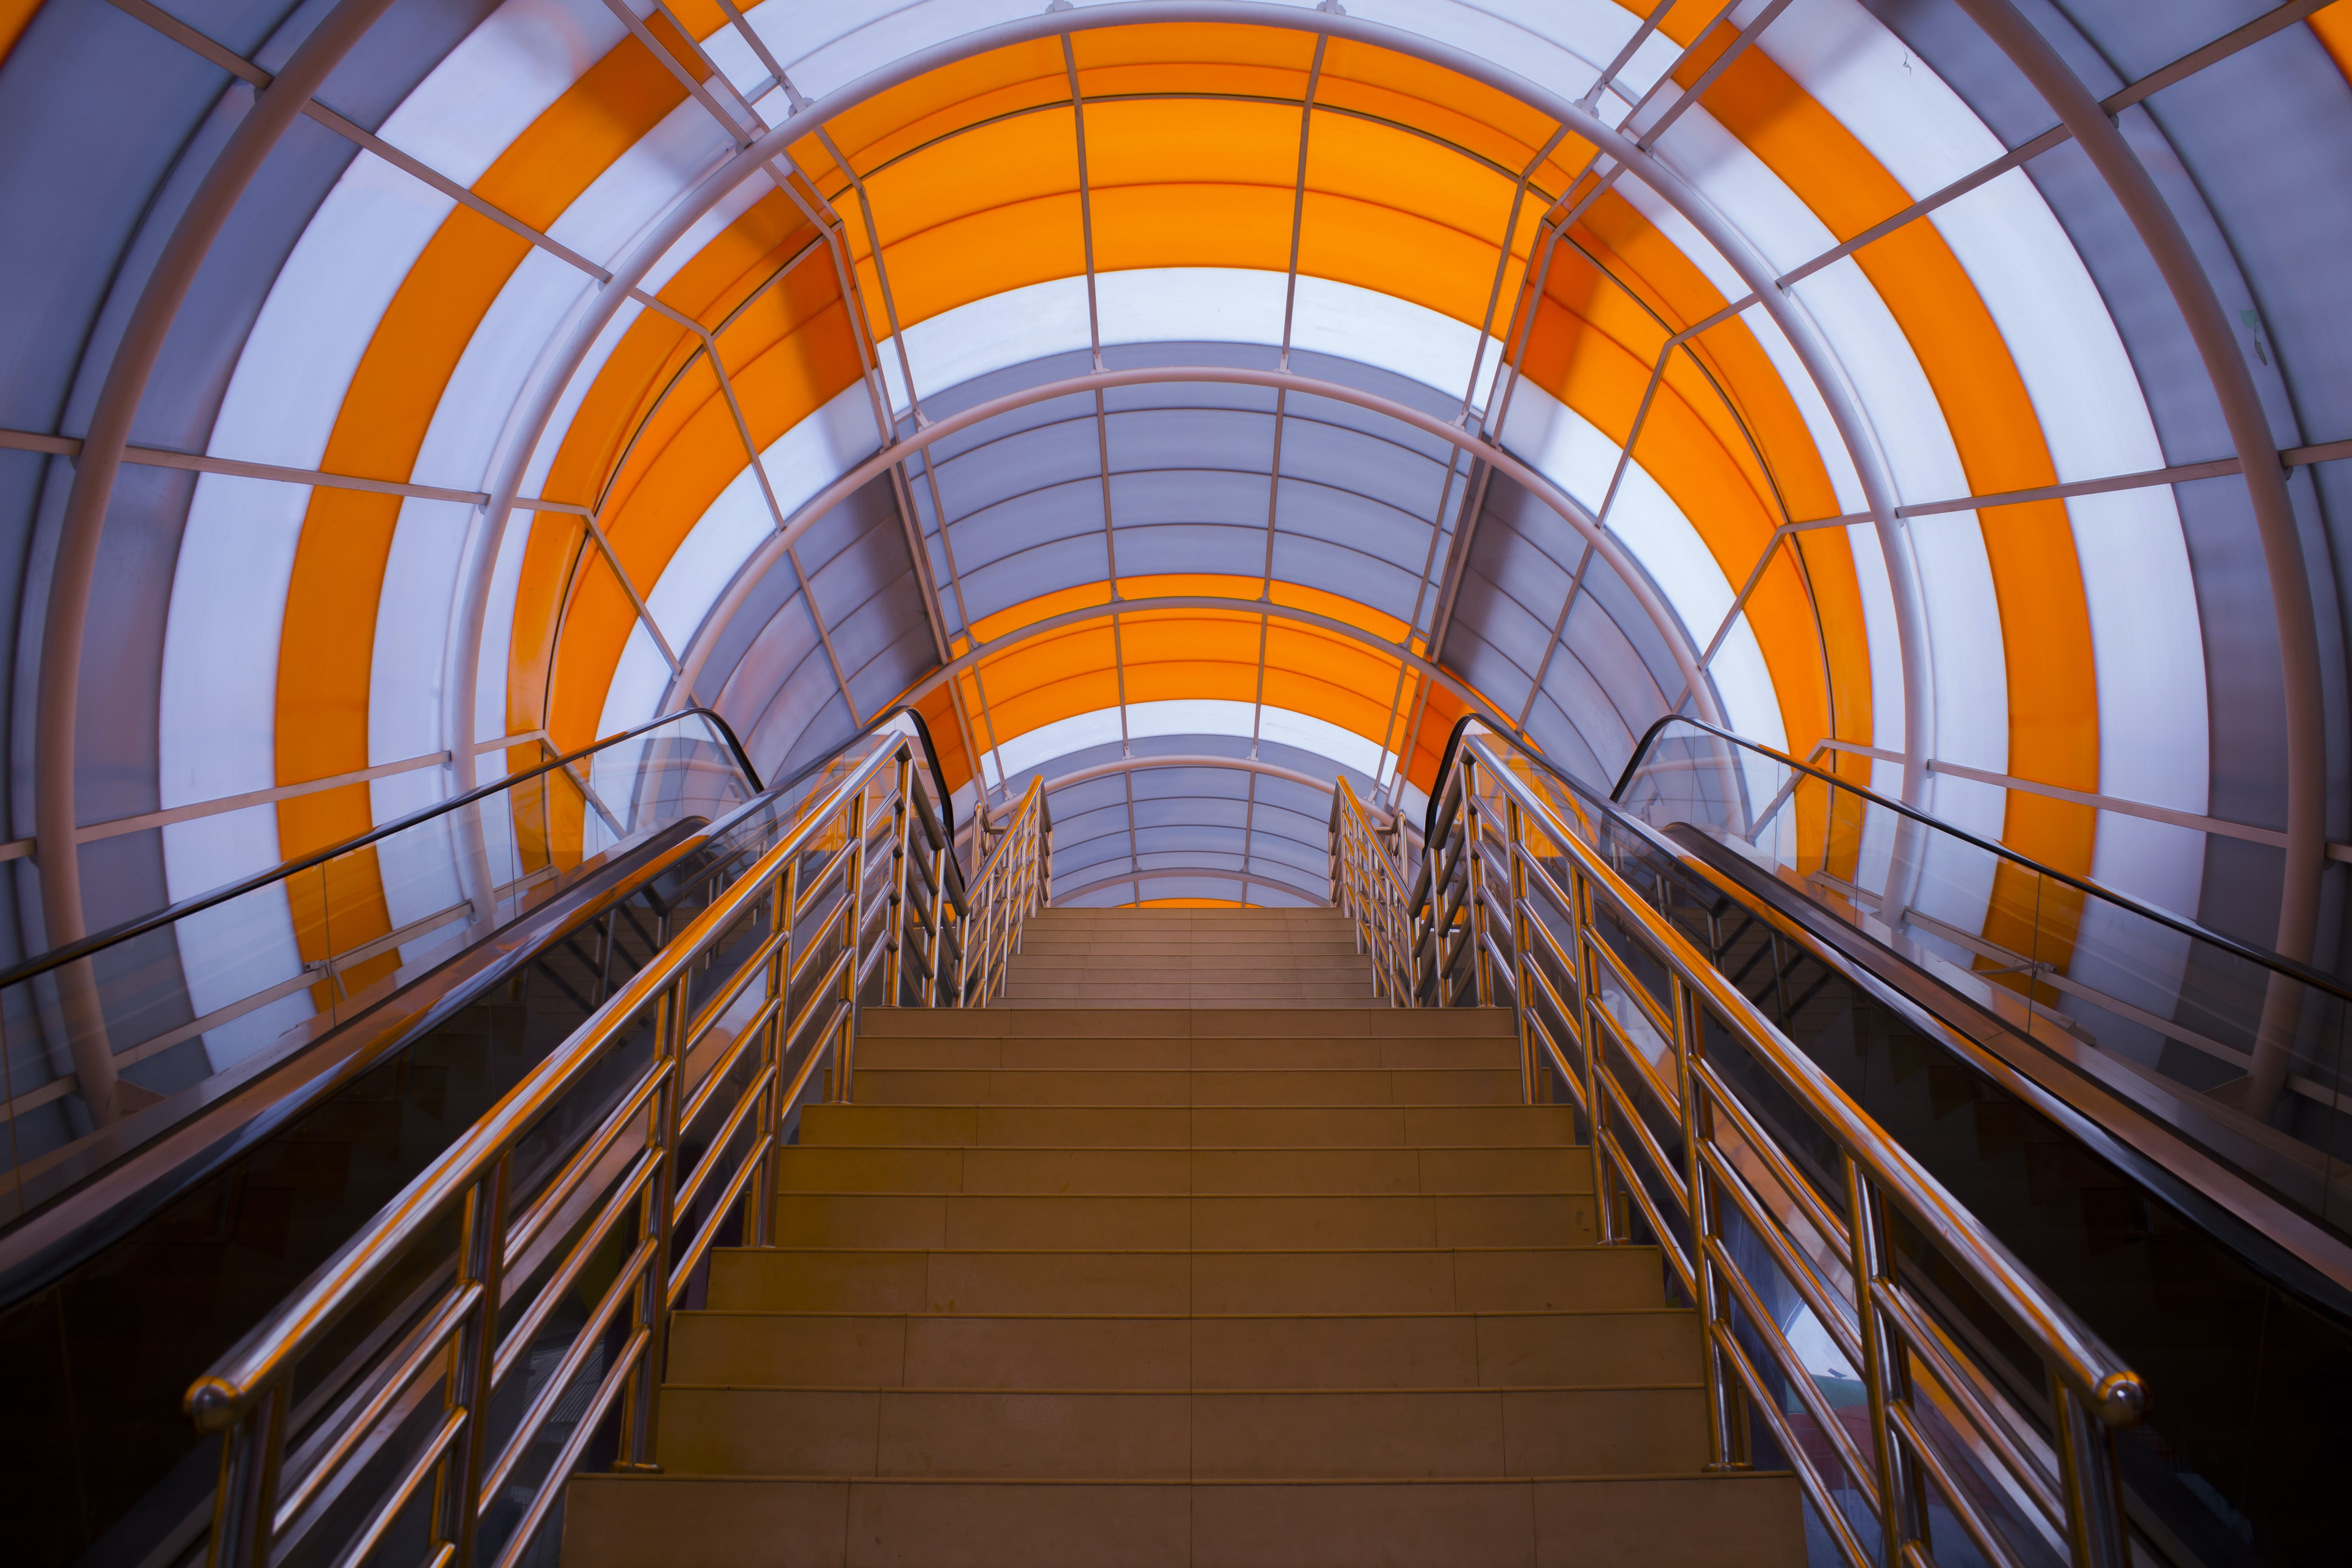 brown staircases with chrome handrails in gray and orange dome